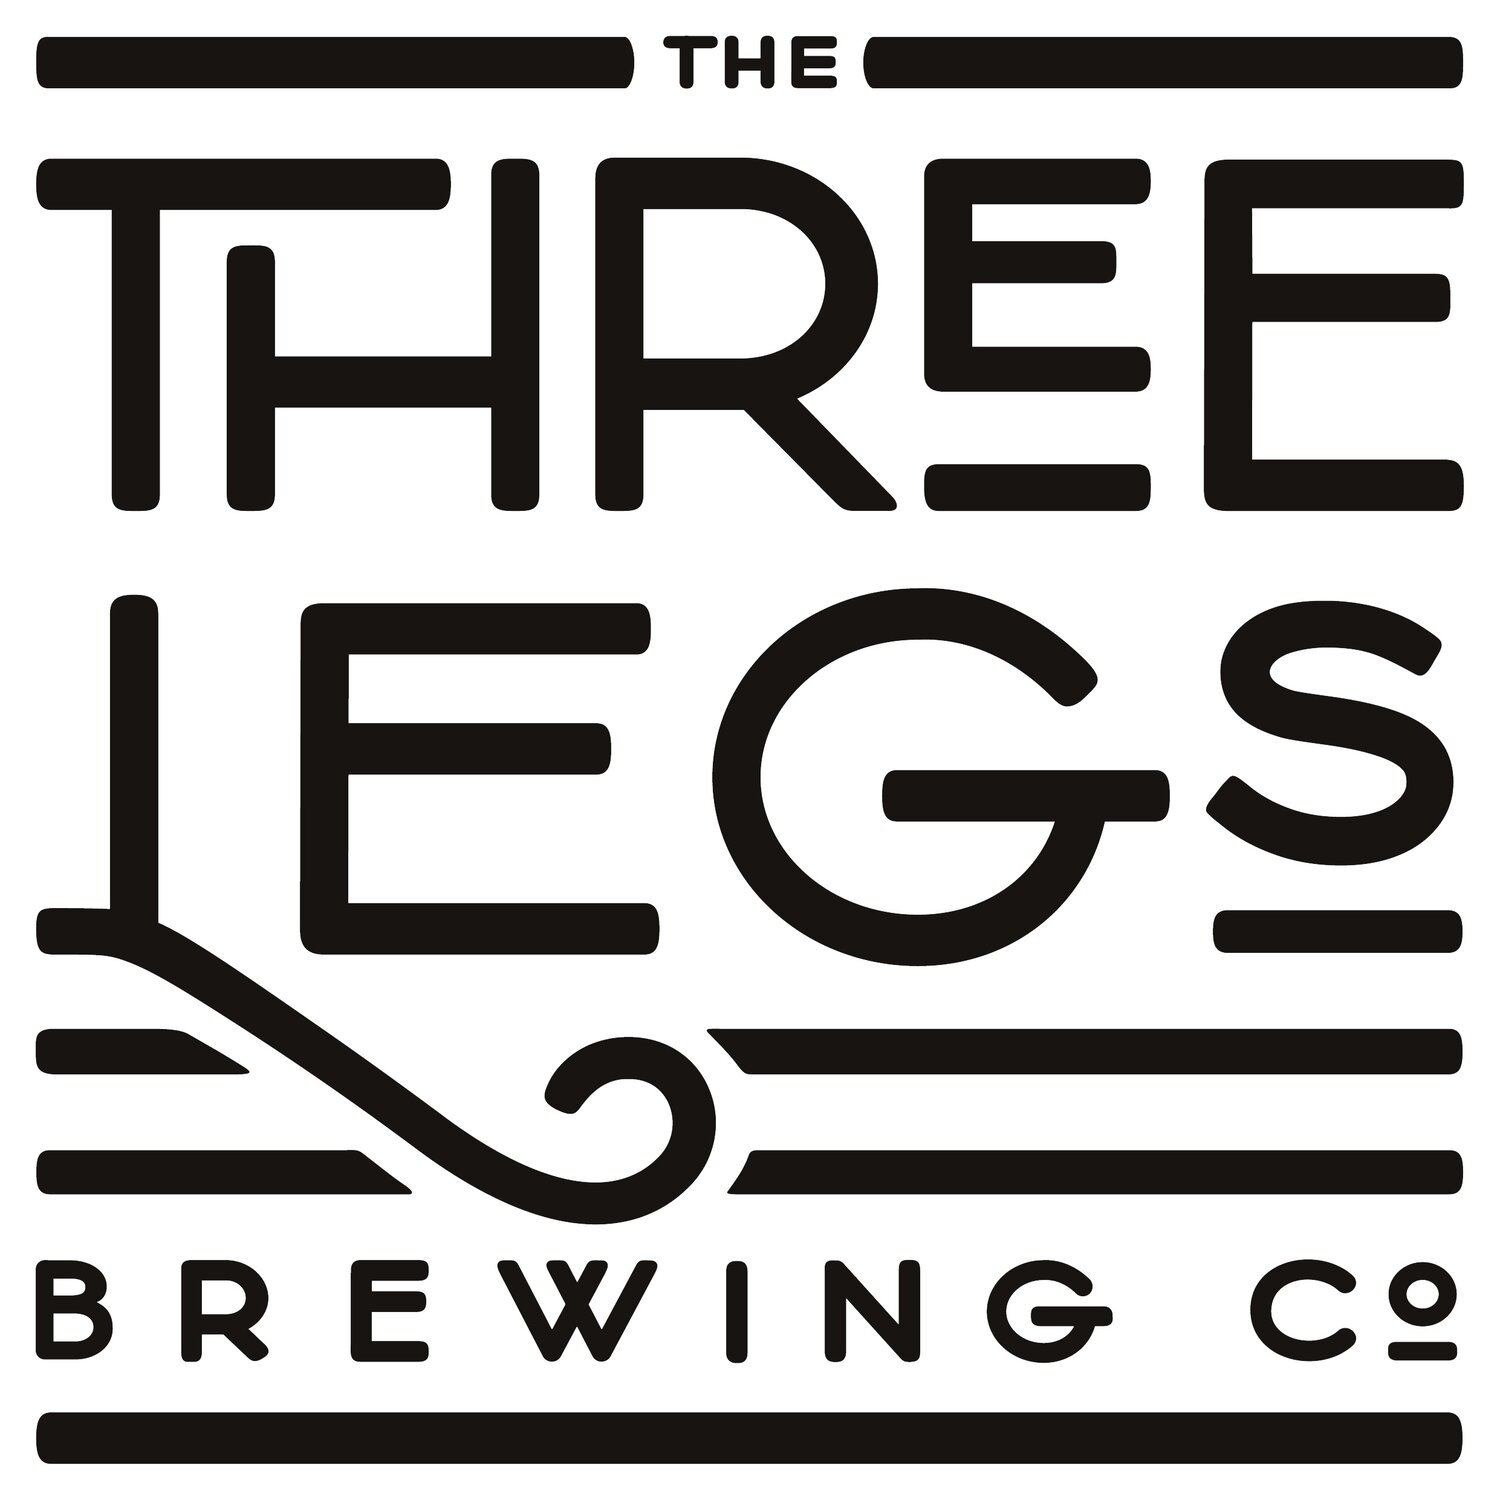 The Three Legs Brewing Company